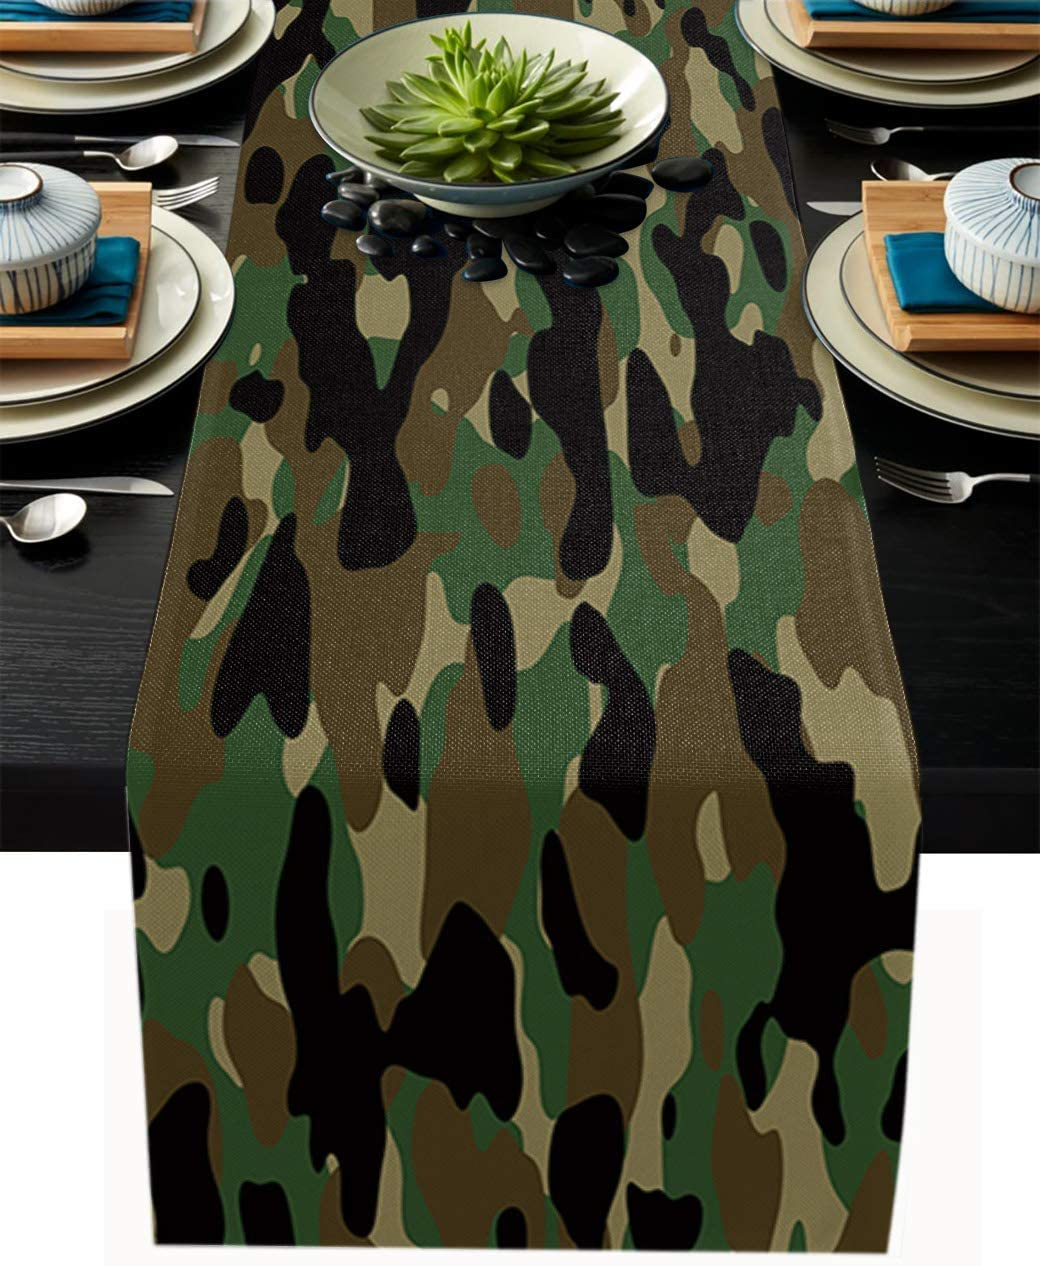 Amazon Com Anoreya Camo Table Runner 13x70 Inch Linen Burlap Runners Dining Cover For Kitchen Wedding Holiday Parties Decorations Forests Military Army Camouflage Pattern Home